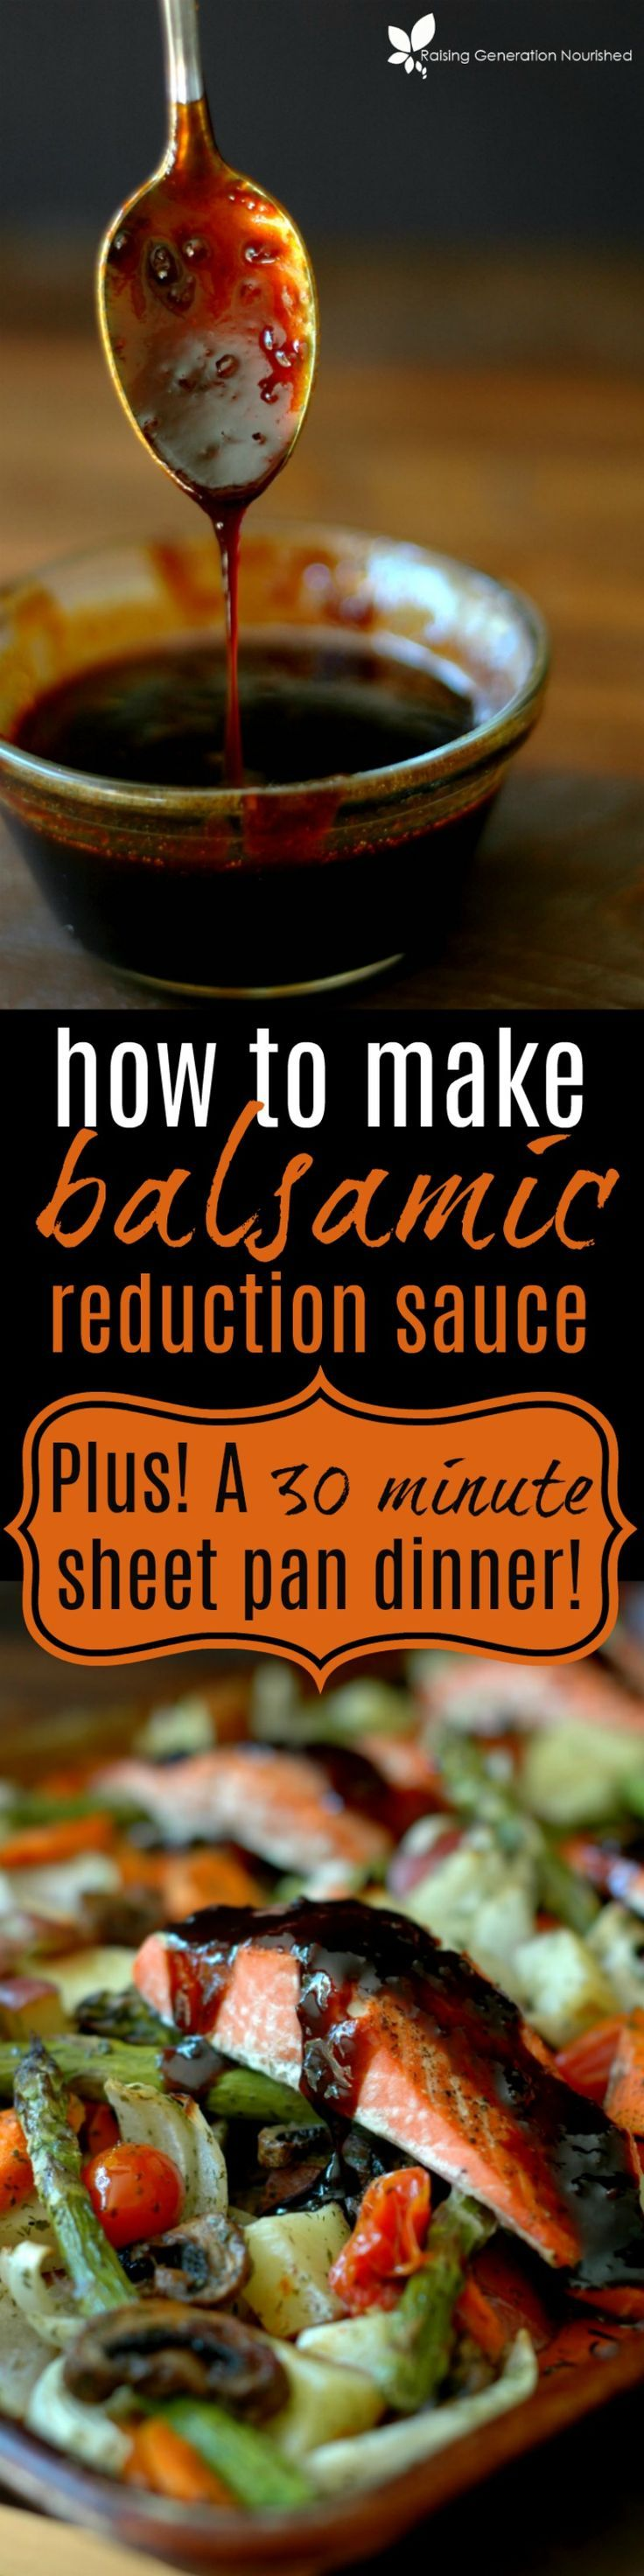 How To Make Balsamic Reduction Sauce :: Plus! A 30 Minute Sheet Pan Dinner!